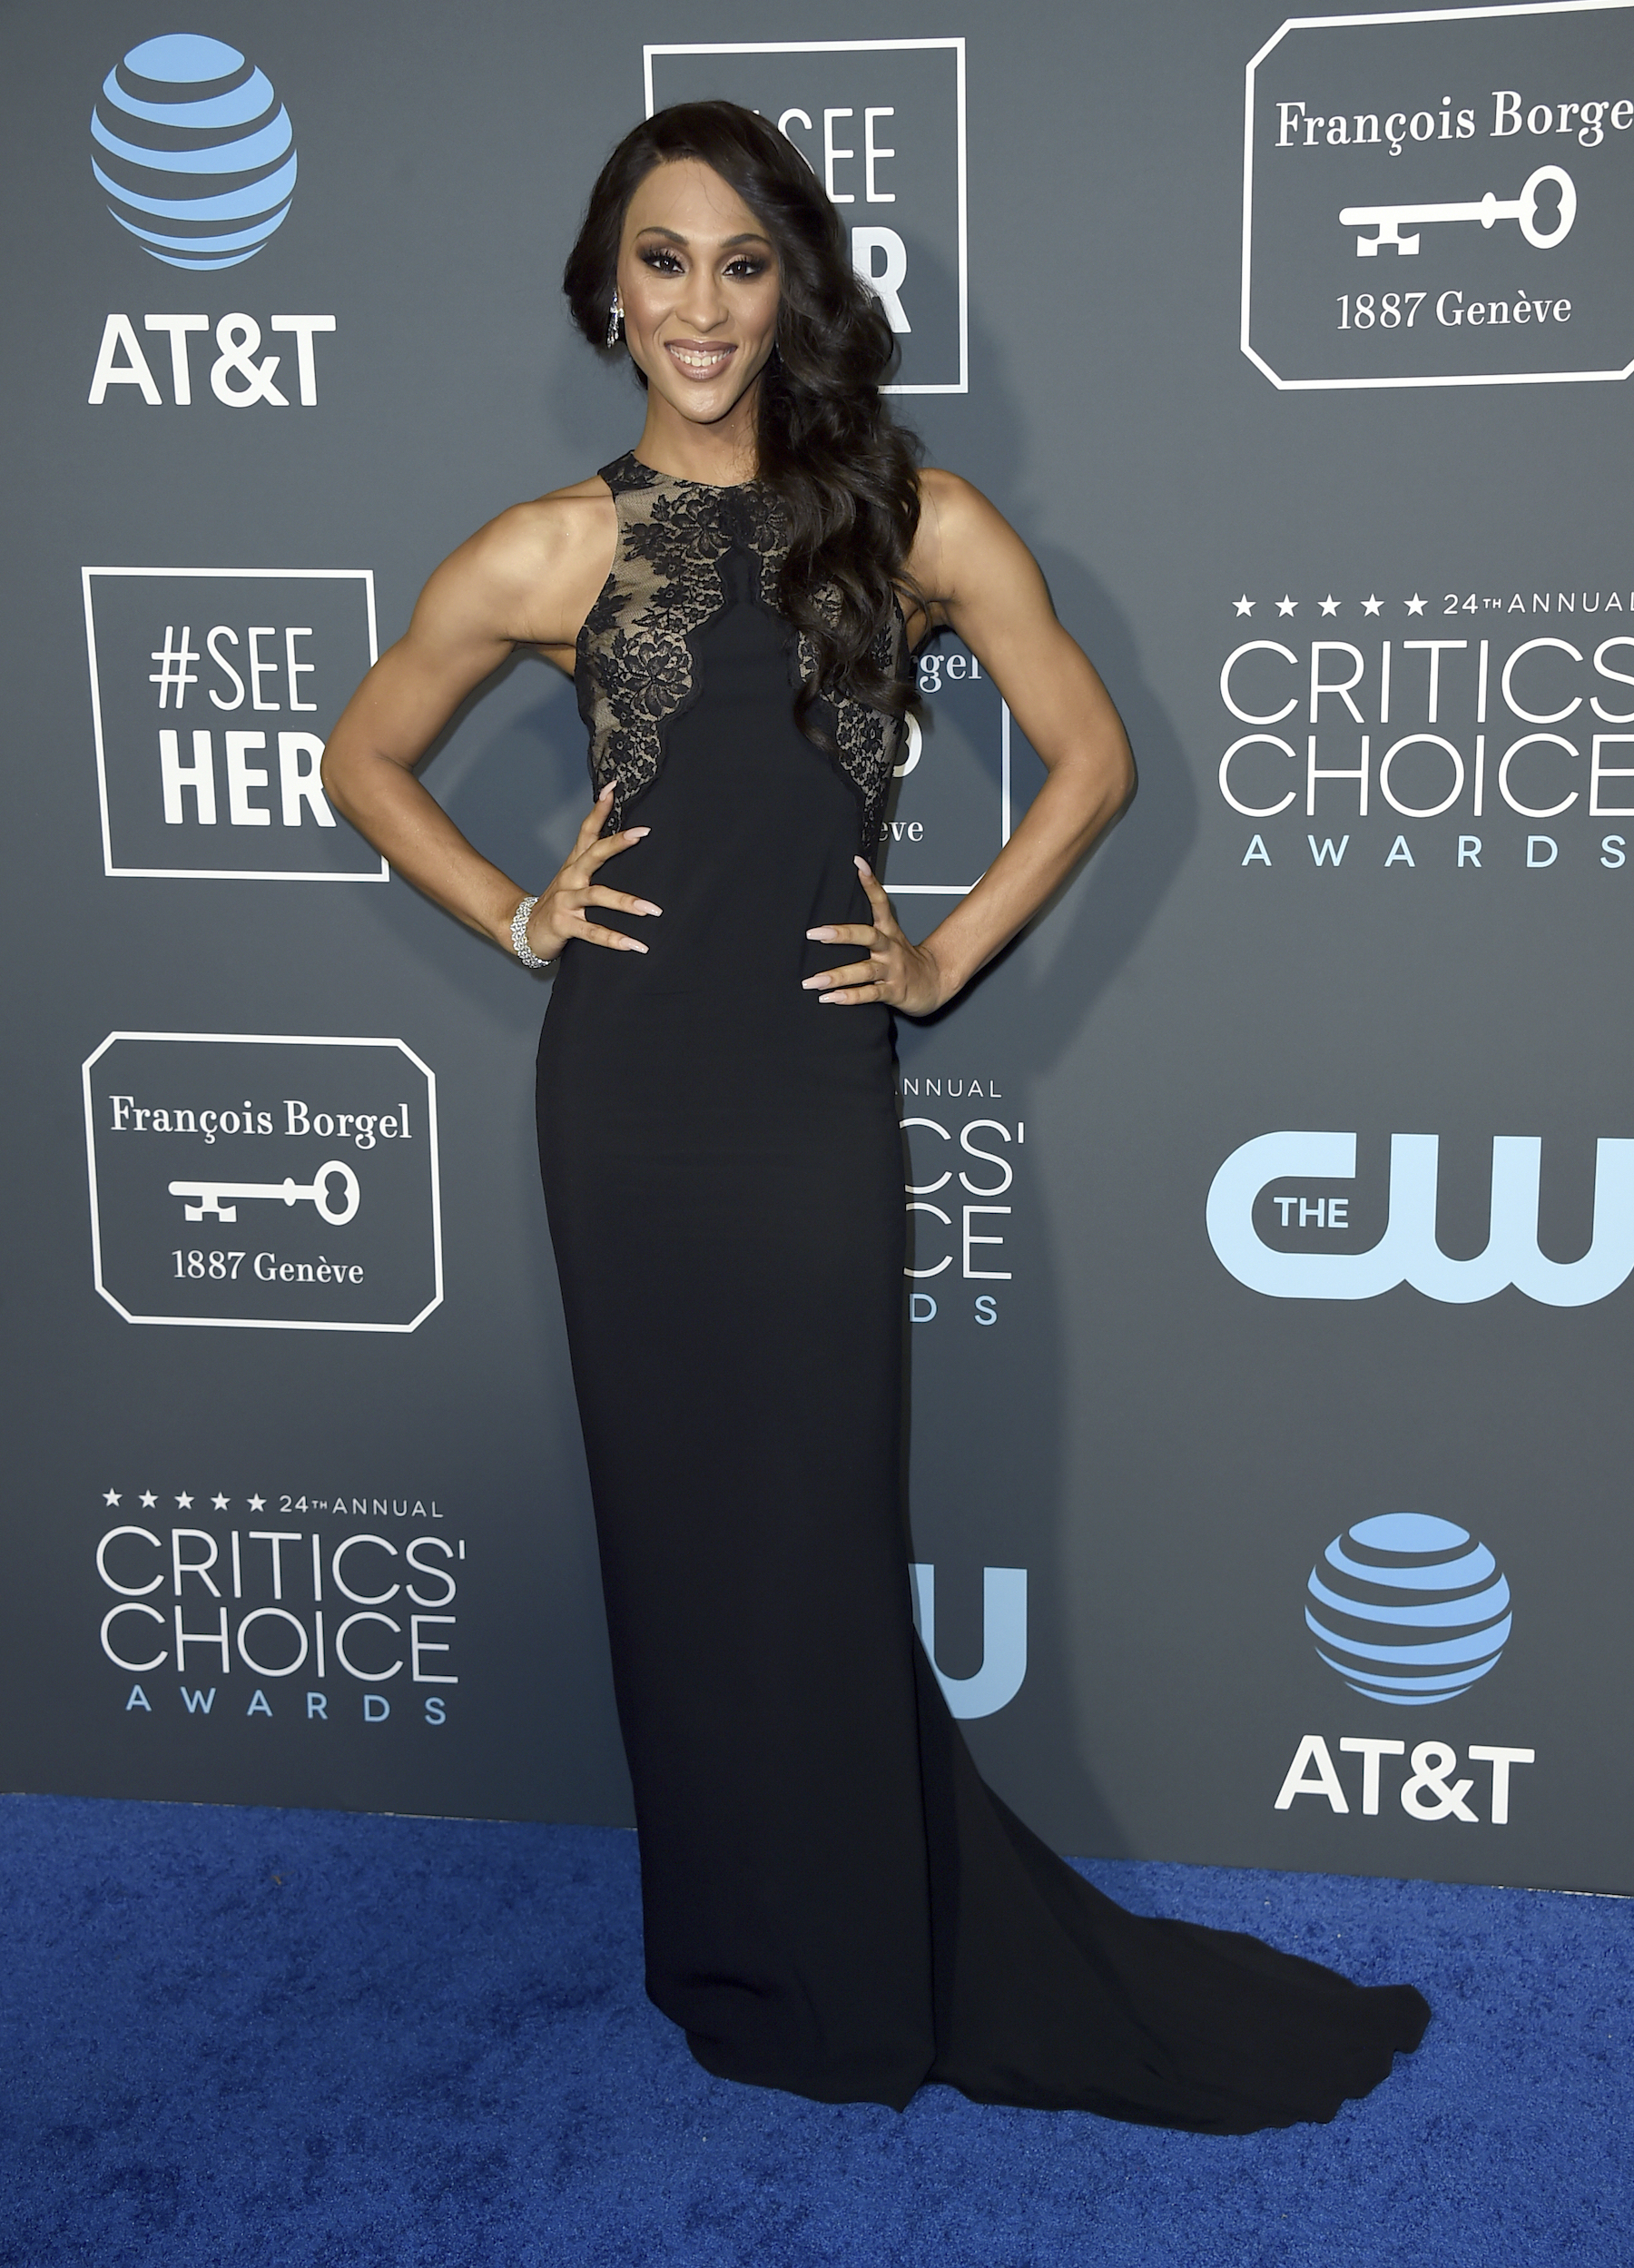 "<div class=""meta image-caption""><div class=""origin-logo origin-image ap""><span>AP</span></div><span class=""caption-text"">Mj Rodriguez arrives at the 24th annual Critics' Choice Awards on Sunday, Jan. 13, 2019, at the Barker Hangar in Santa Monica, Calif. (Jordan Strauss/Invision/AP)</span></div>"